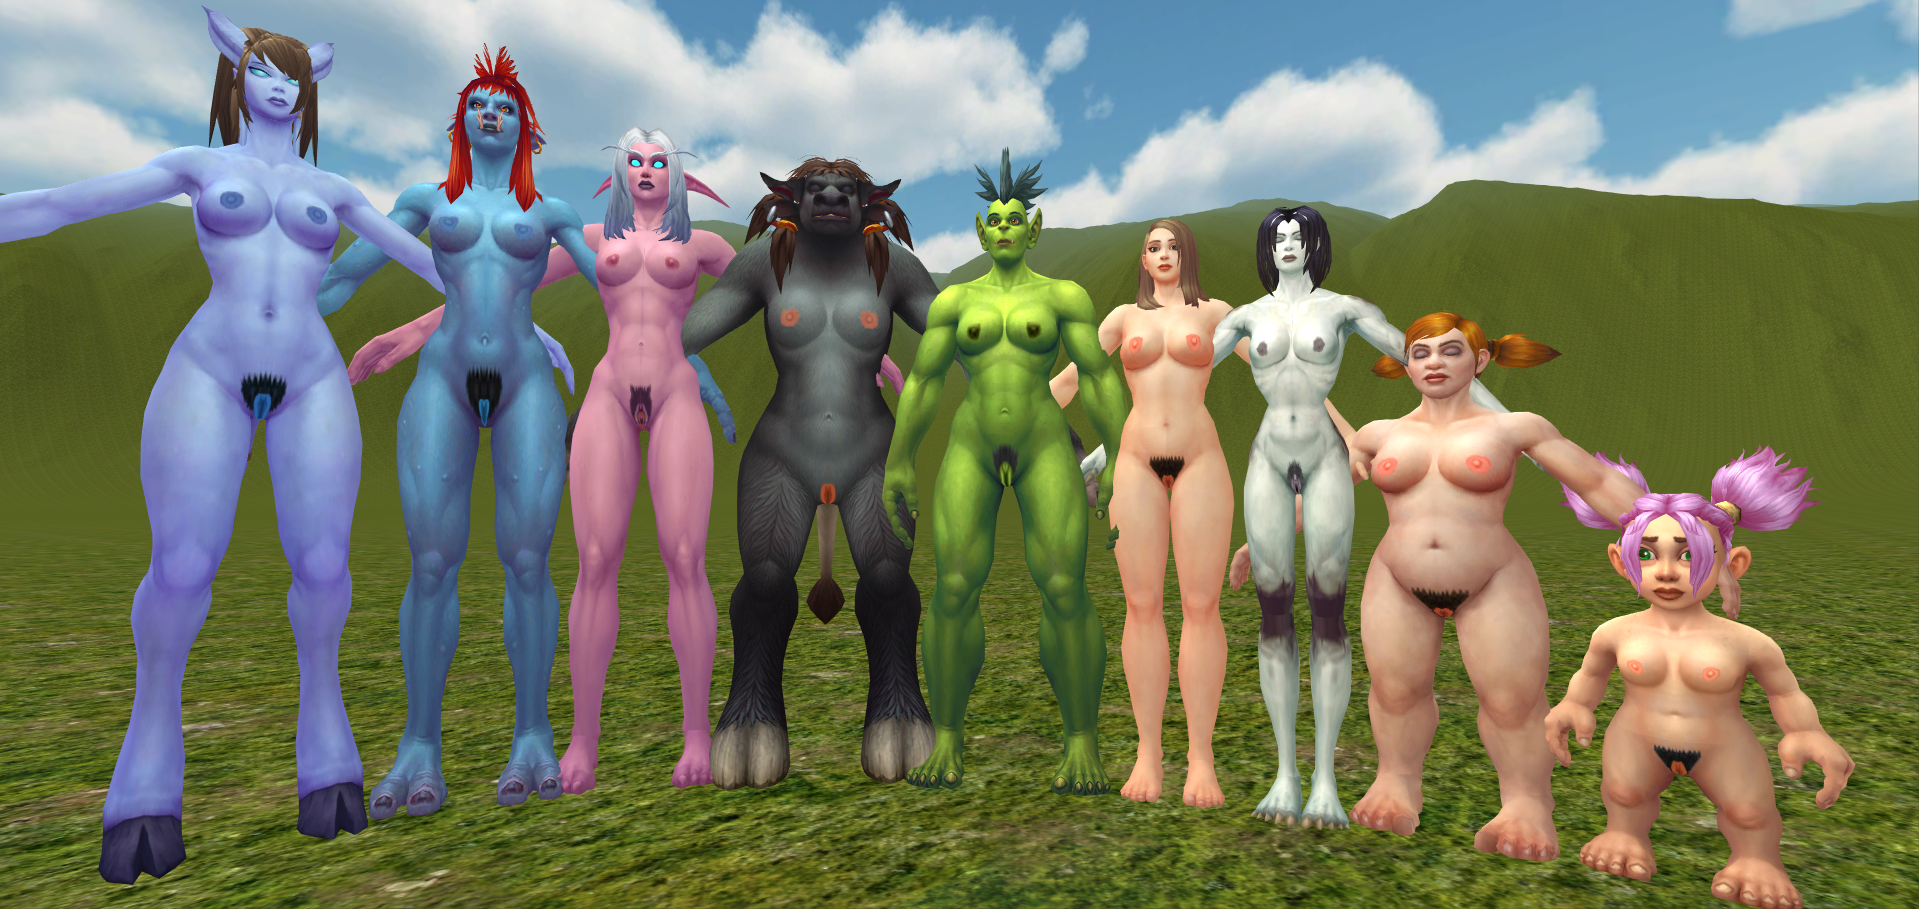 World of warcraft xxx mods nudes scene